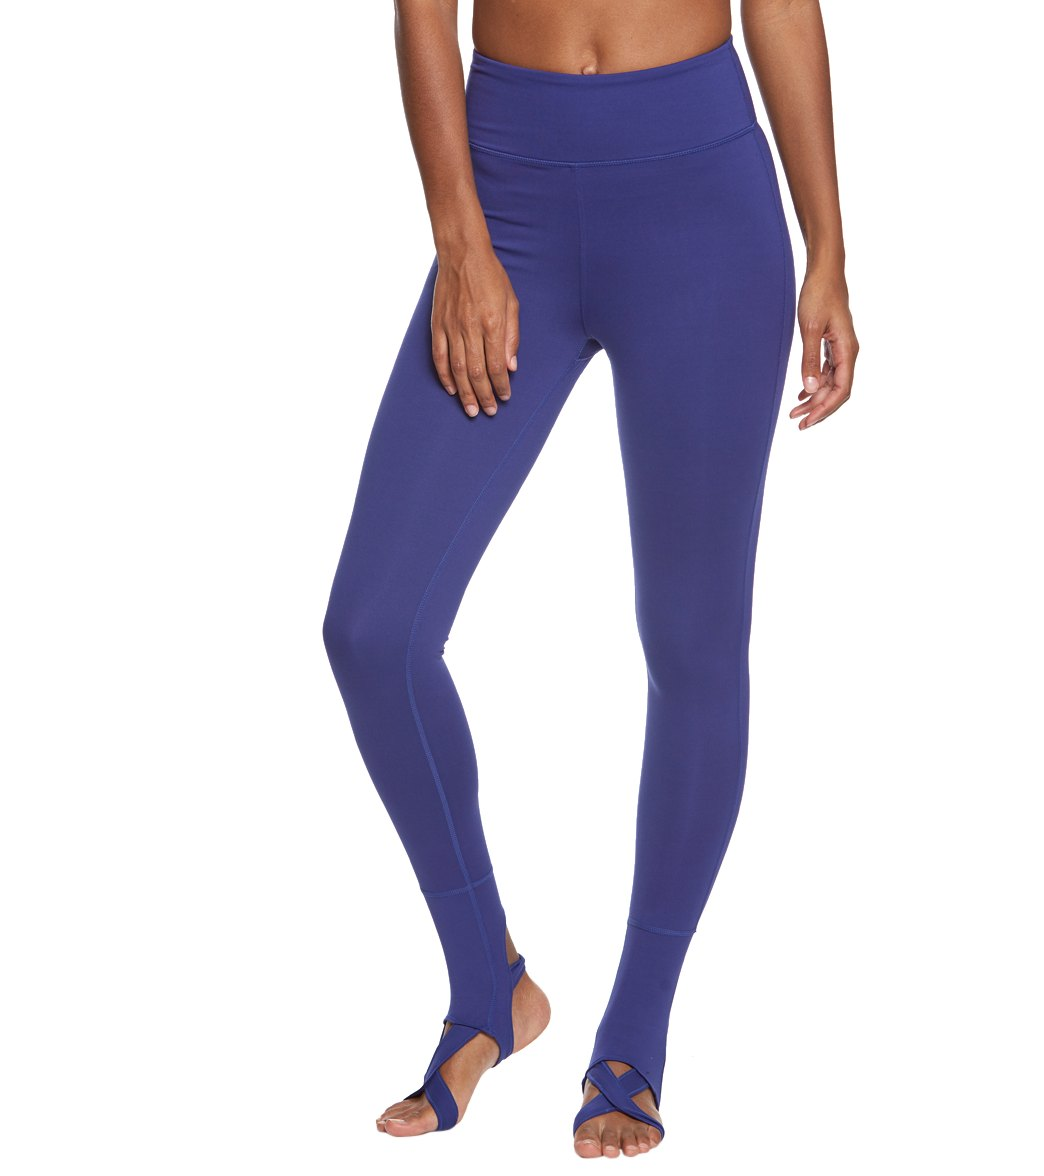 ff6a5e5853f8 Free People Movement Synergy Yoga Leggings at YogaOutlet.com - Free Shipping